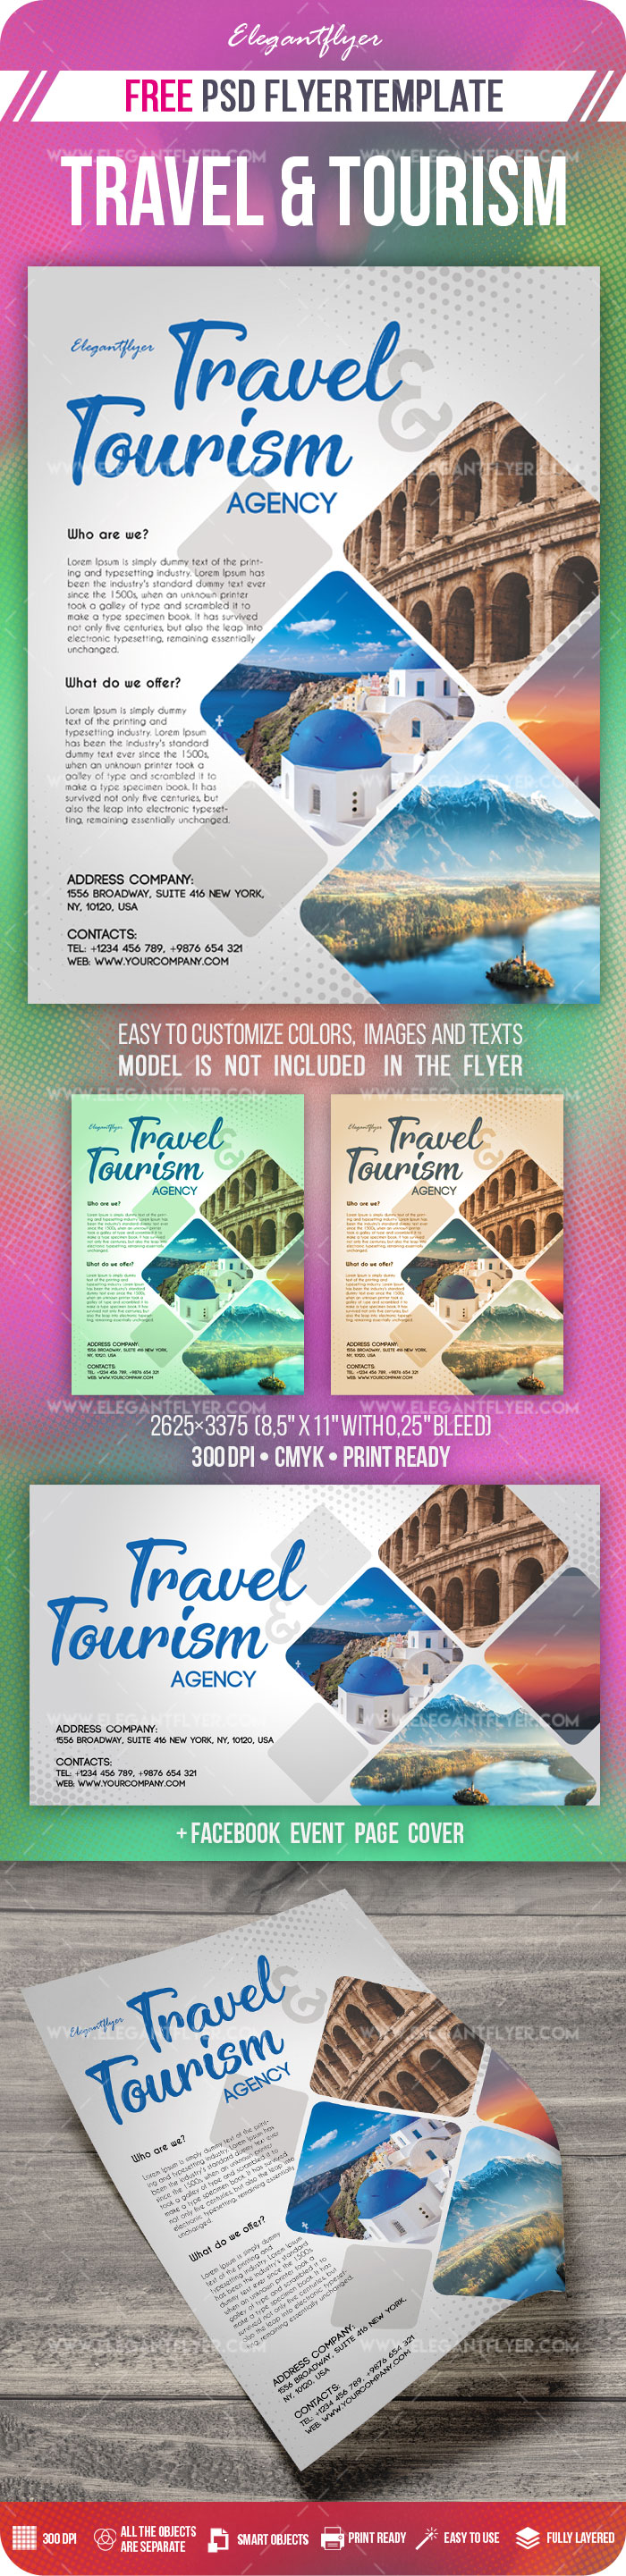 travel and tourism  u2013 flyer psd template  u2013 by elegantflyer